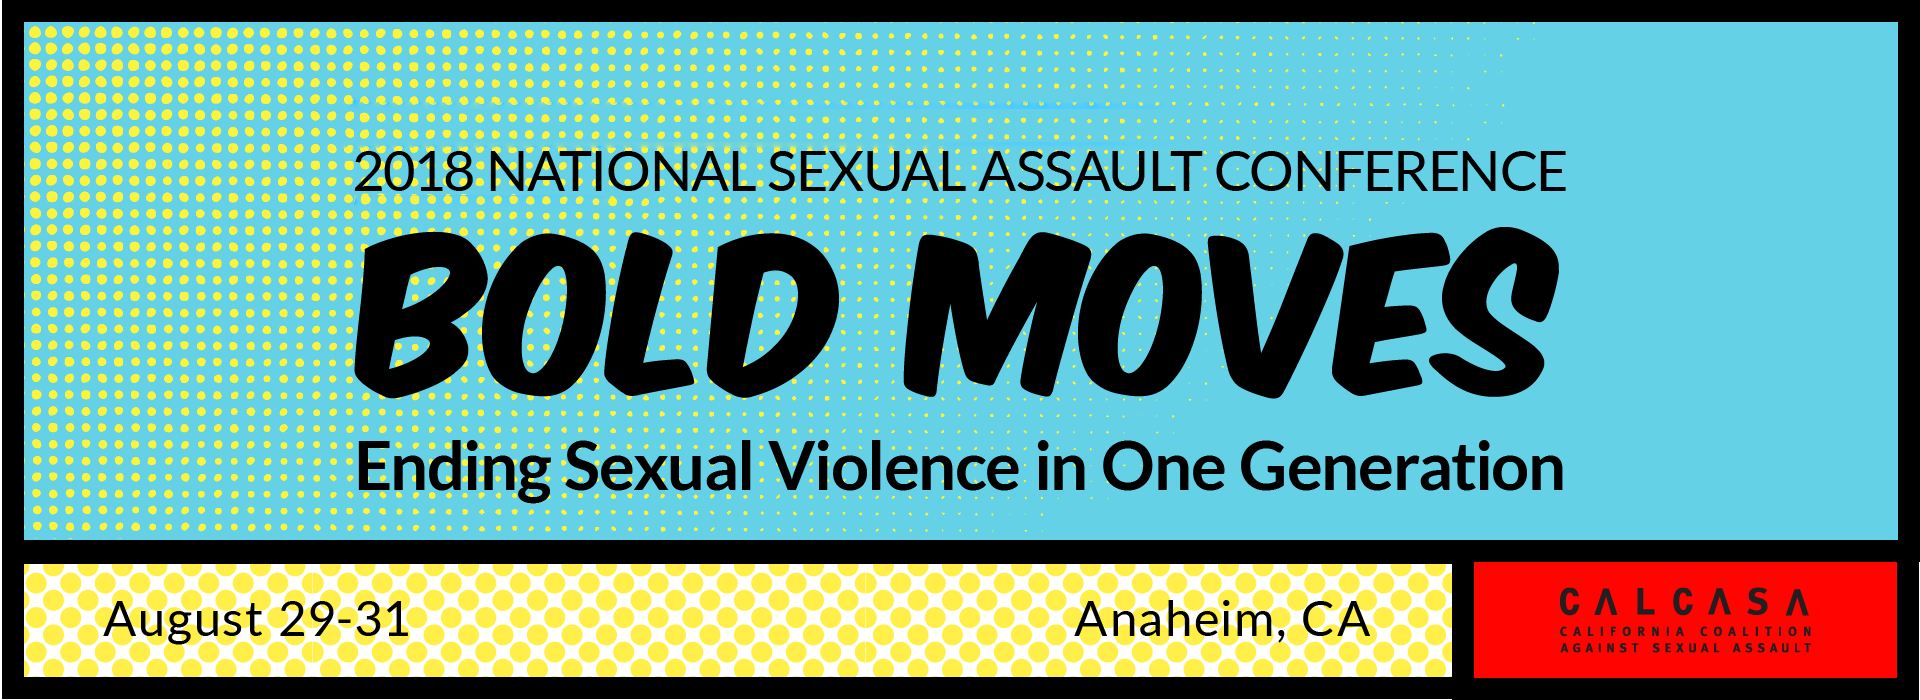 2018 National Sexual Assault Conference